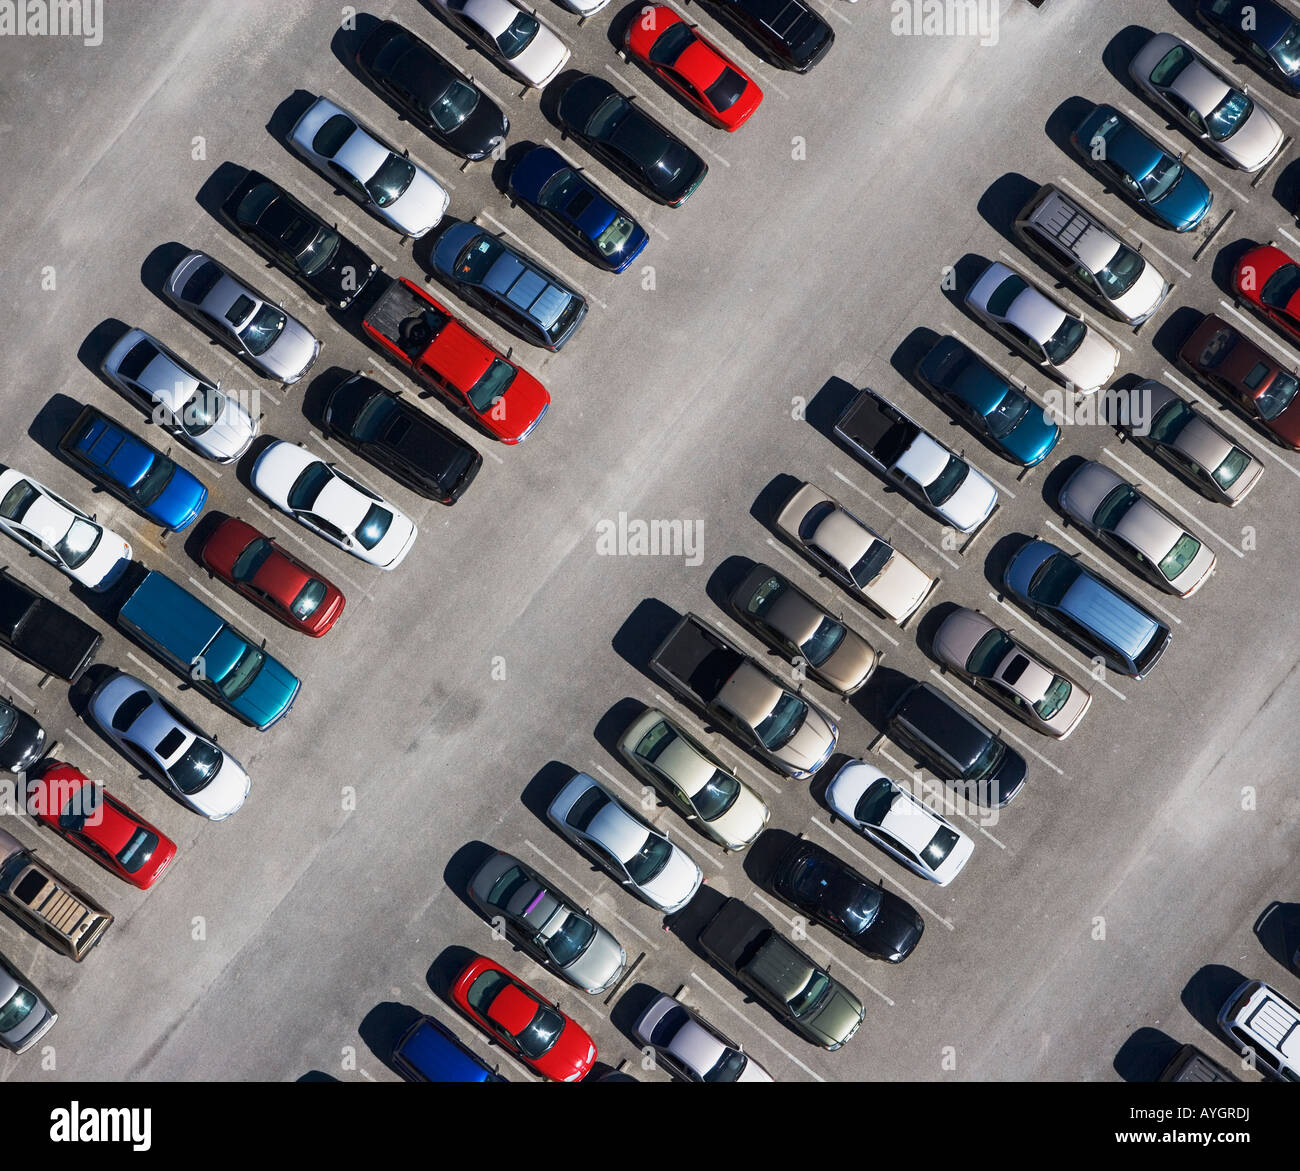 aerial veiw of cars in parking lot - Stock Image